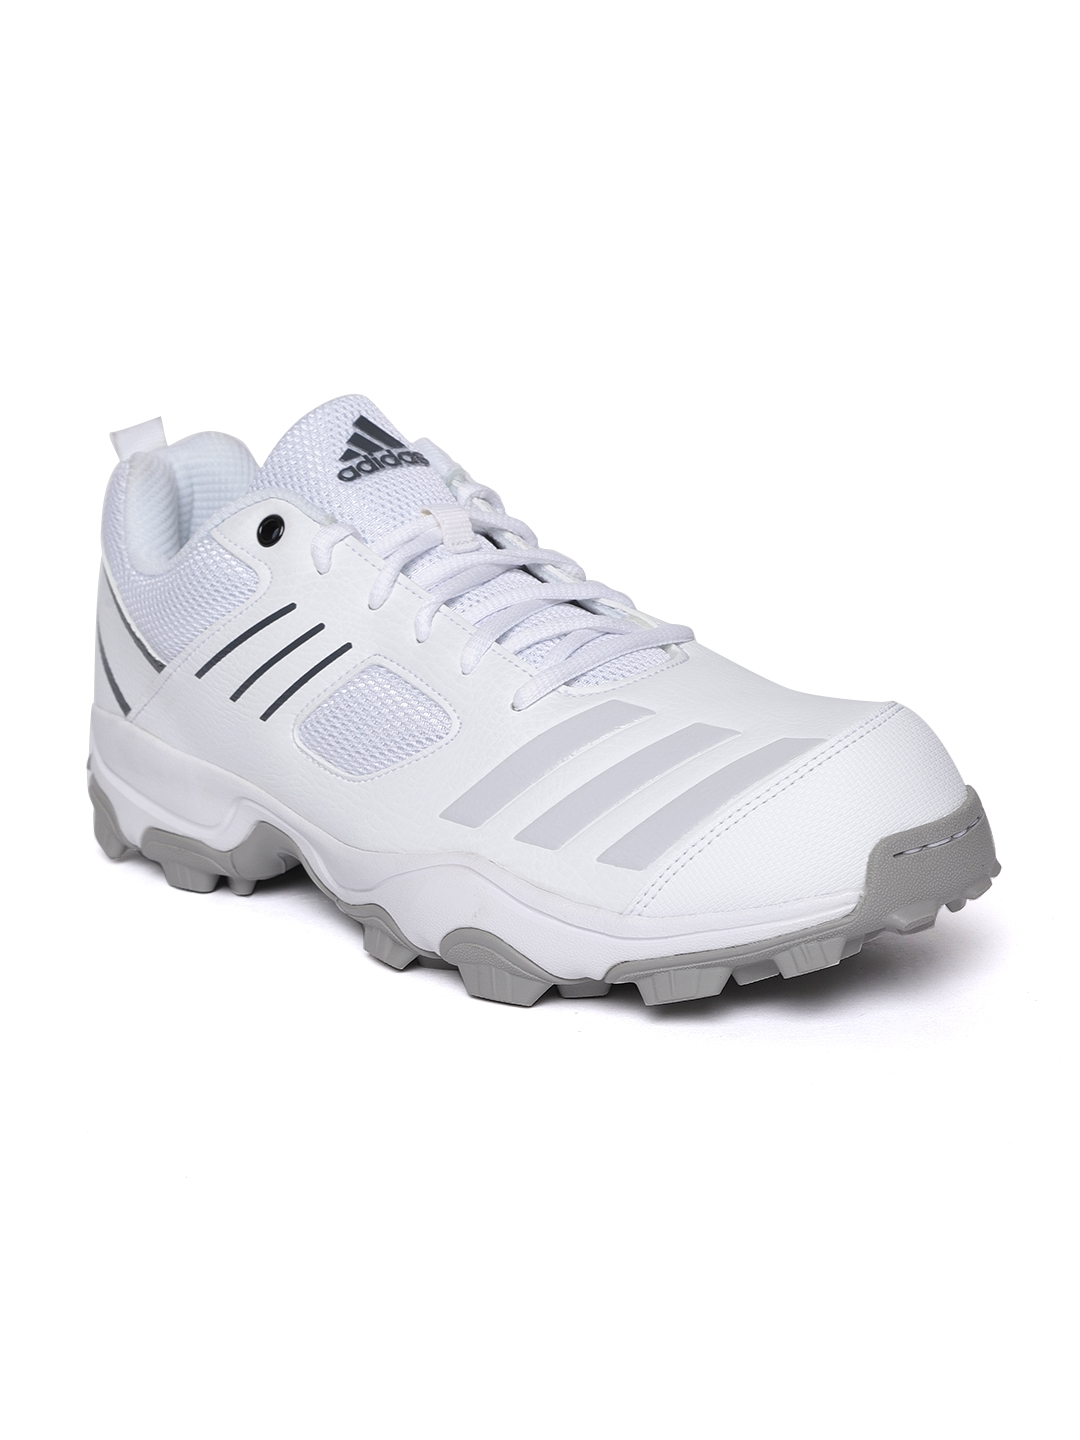 4447771760080f Buy ADIDAS Men White Cricket Shoes - Sports Shoes for Men 6841995 ...